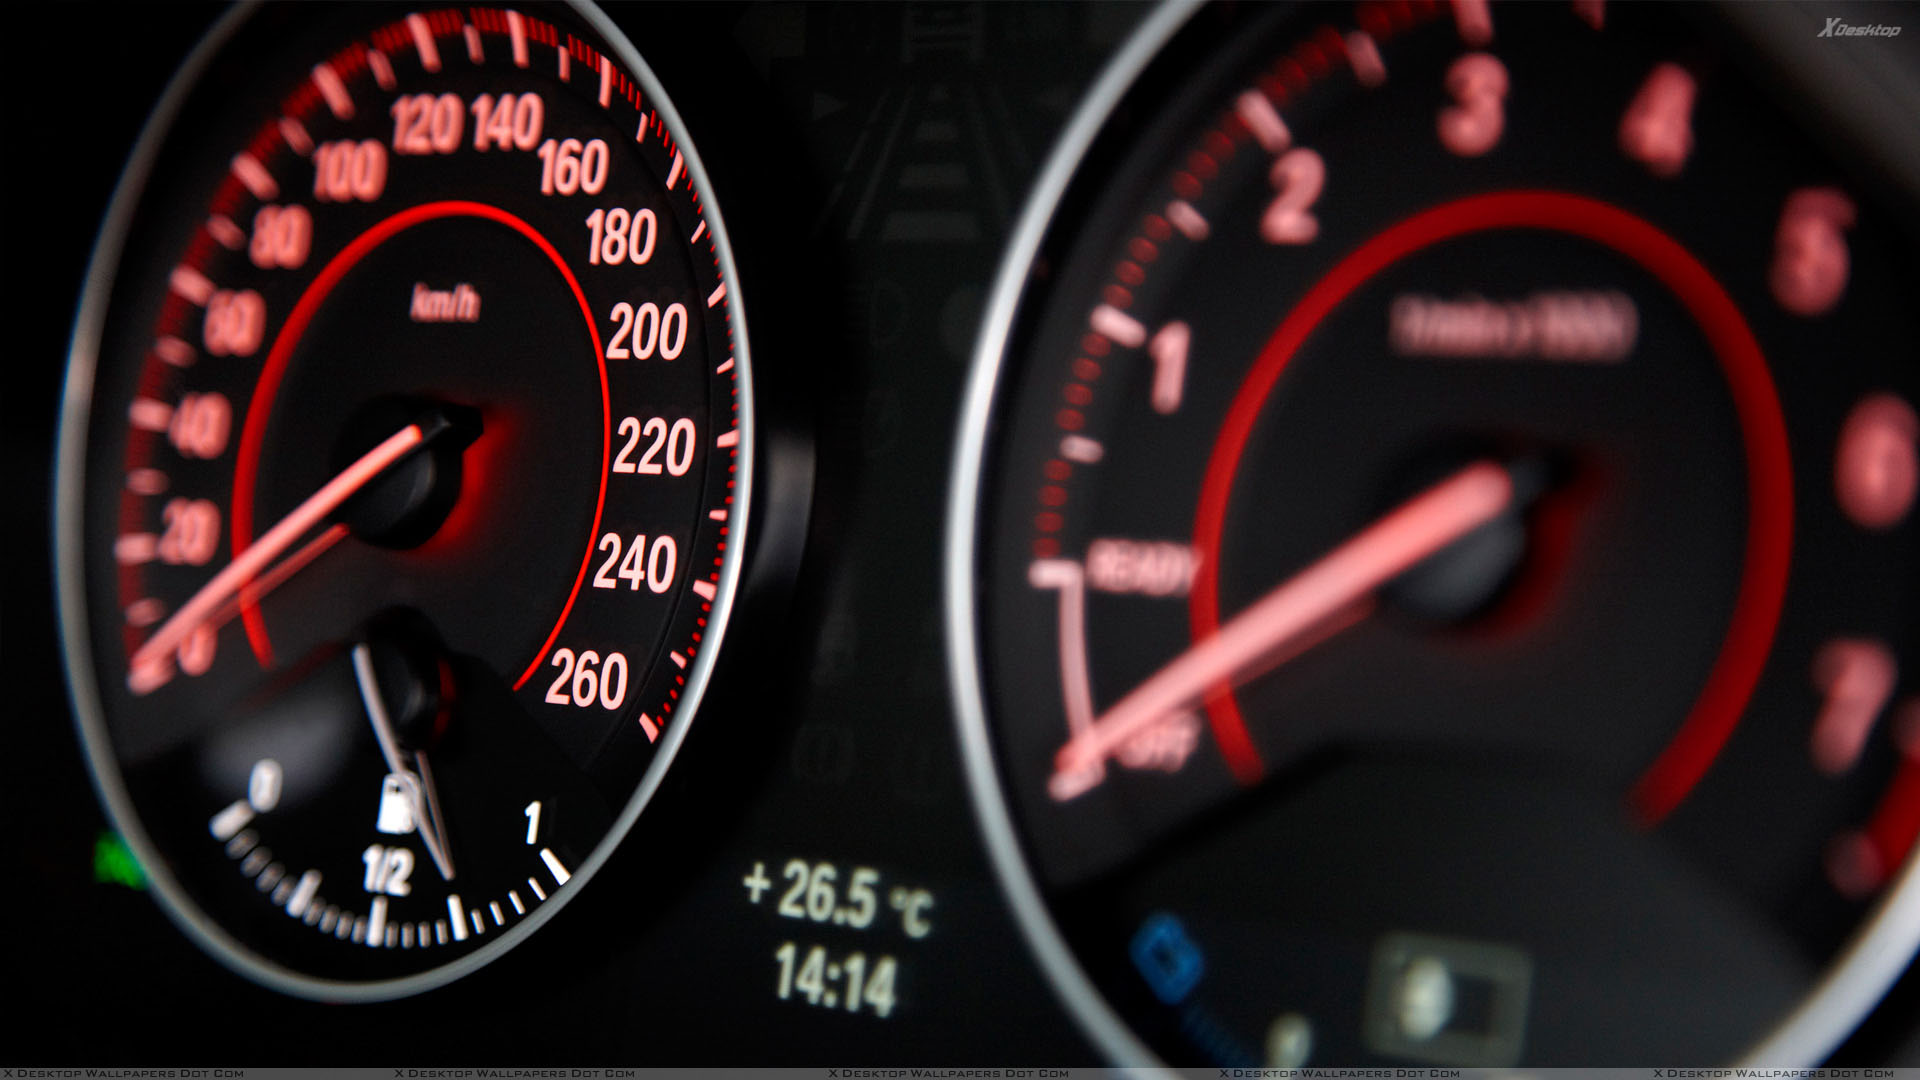 2012 Bmw 1 Series Speedometer Wallpaper